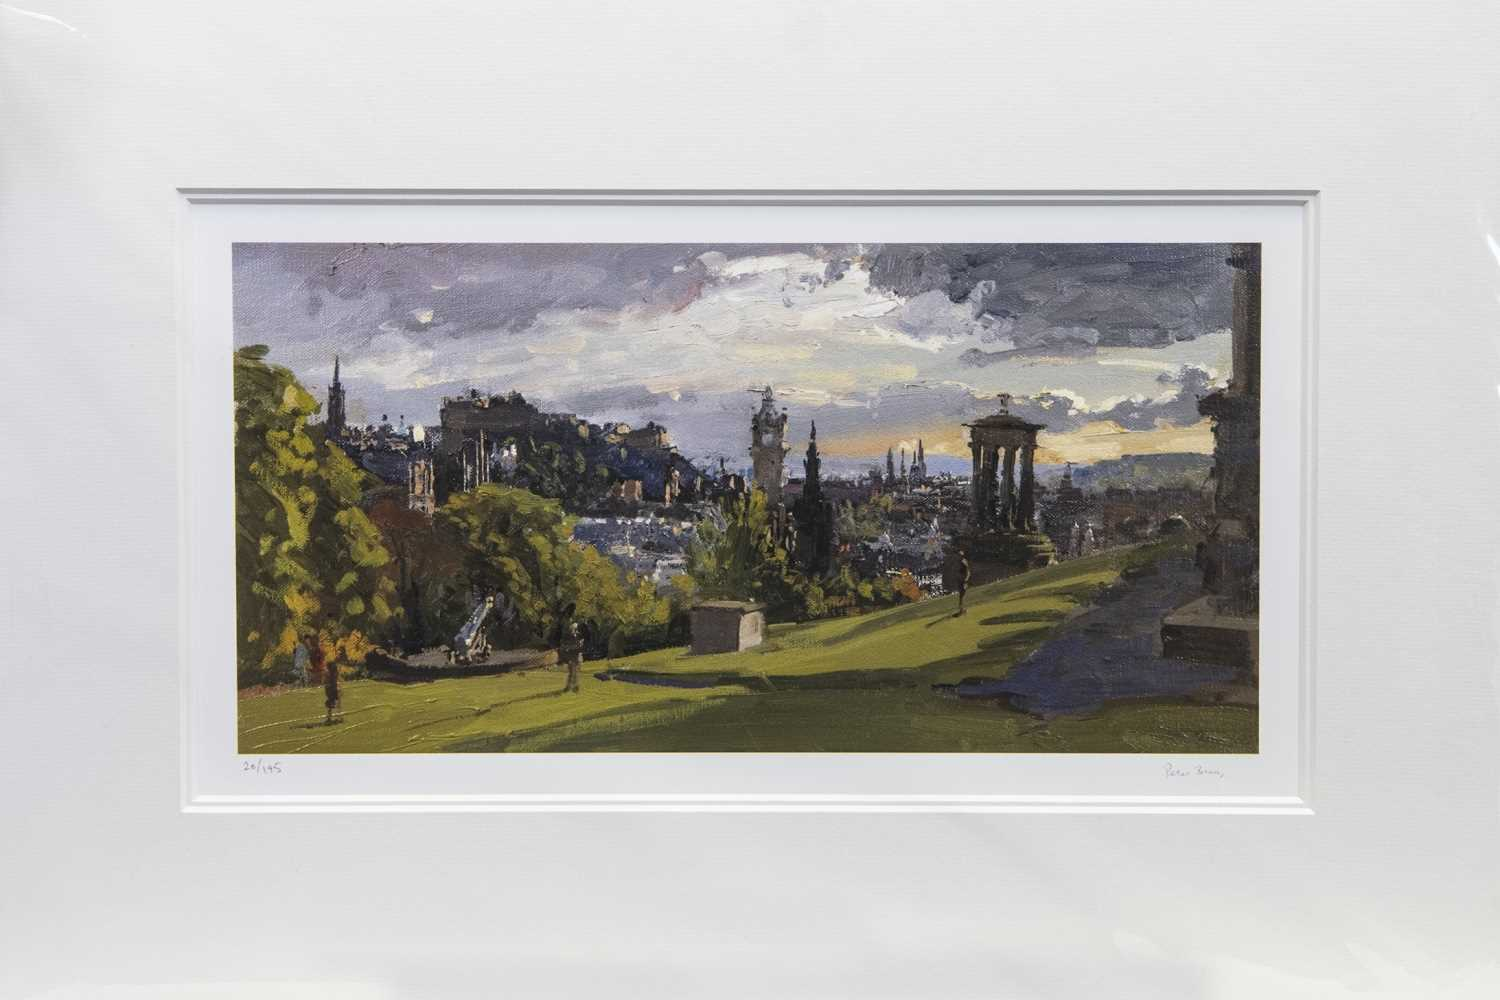 Lot 129 - EARLY MAY EVENING FROM CALTON HILL, A PRINT BY PETER BROWN